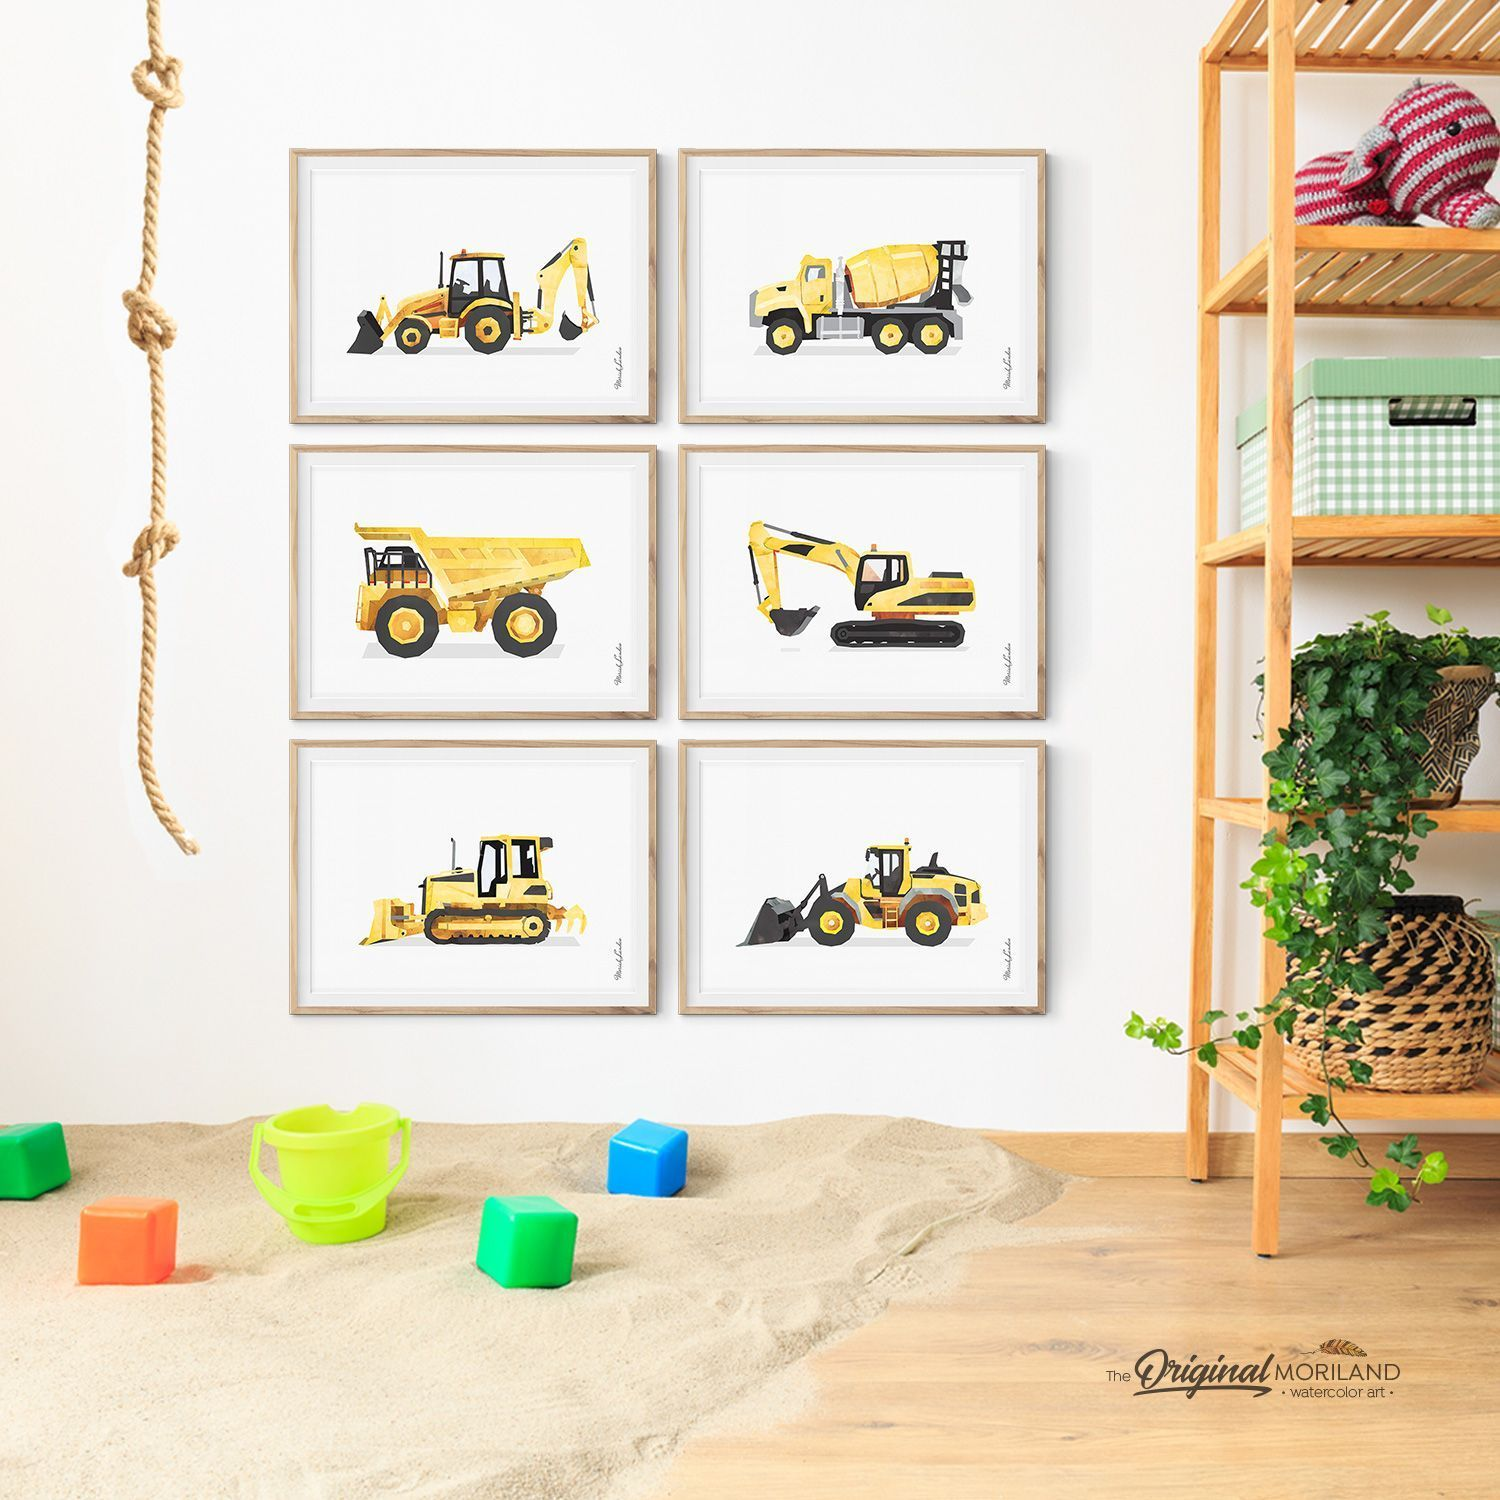 Digger Print, Construction Art Print, Toddler Boys Room Decor, Truck